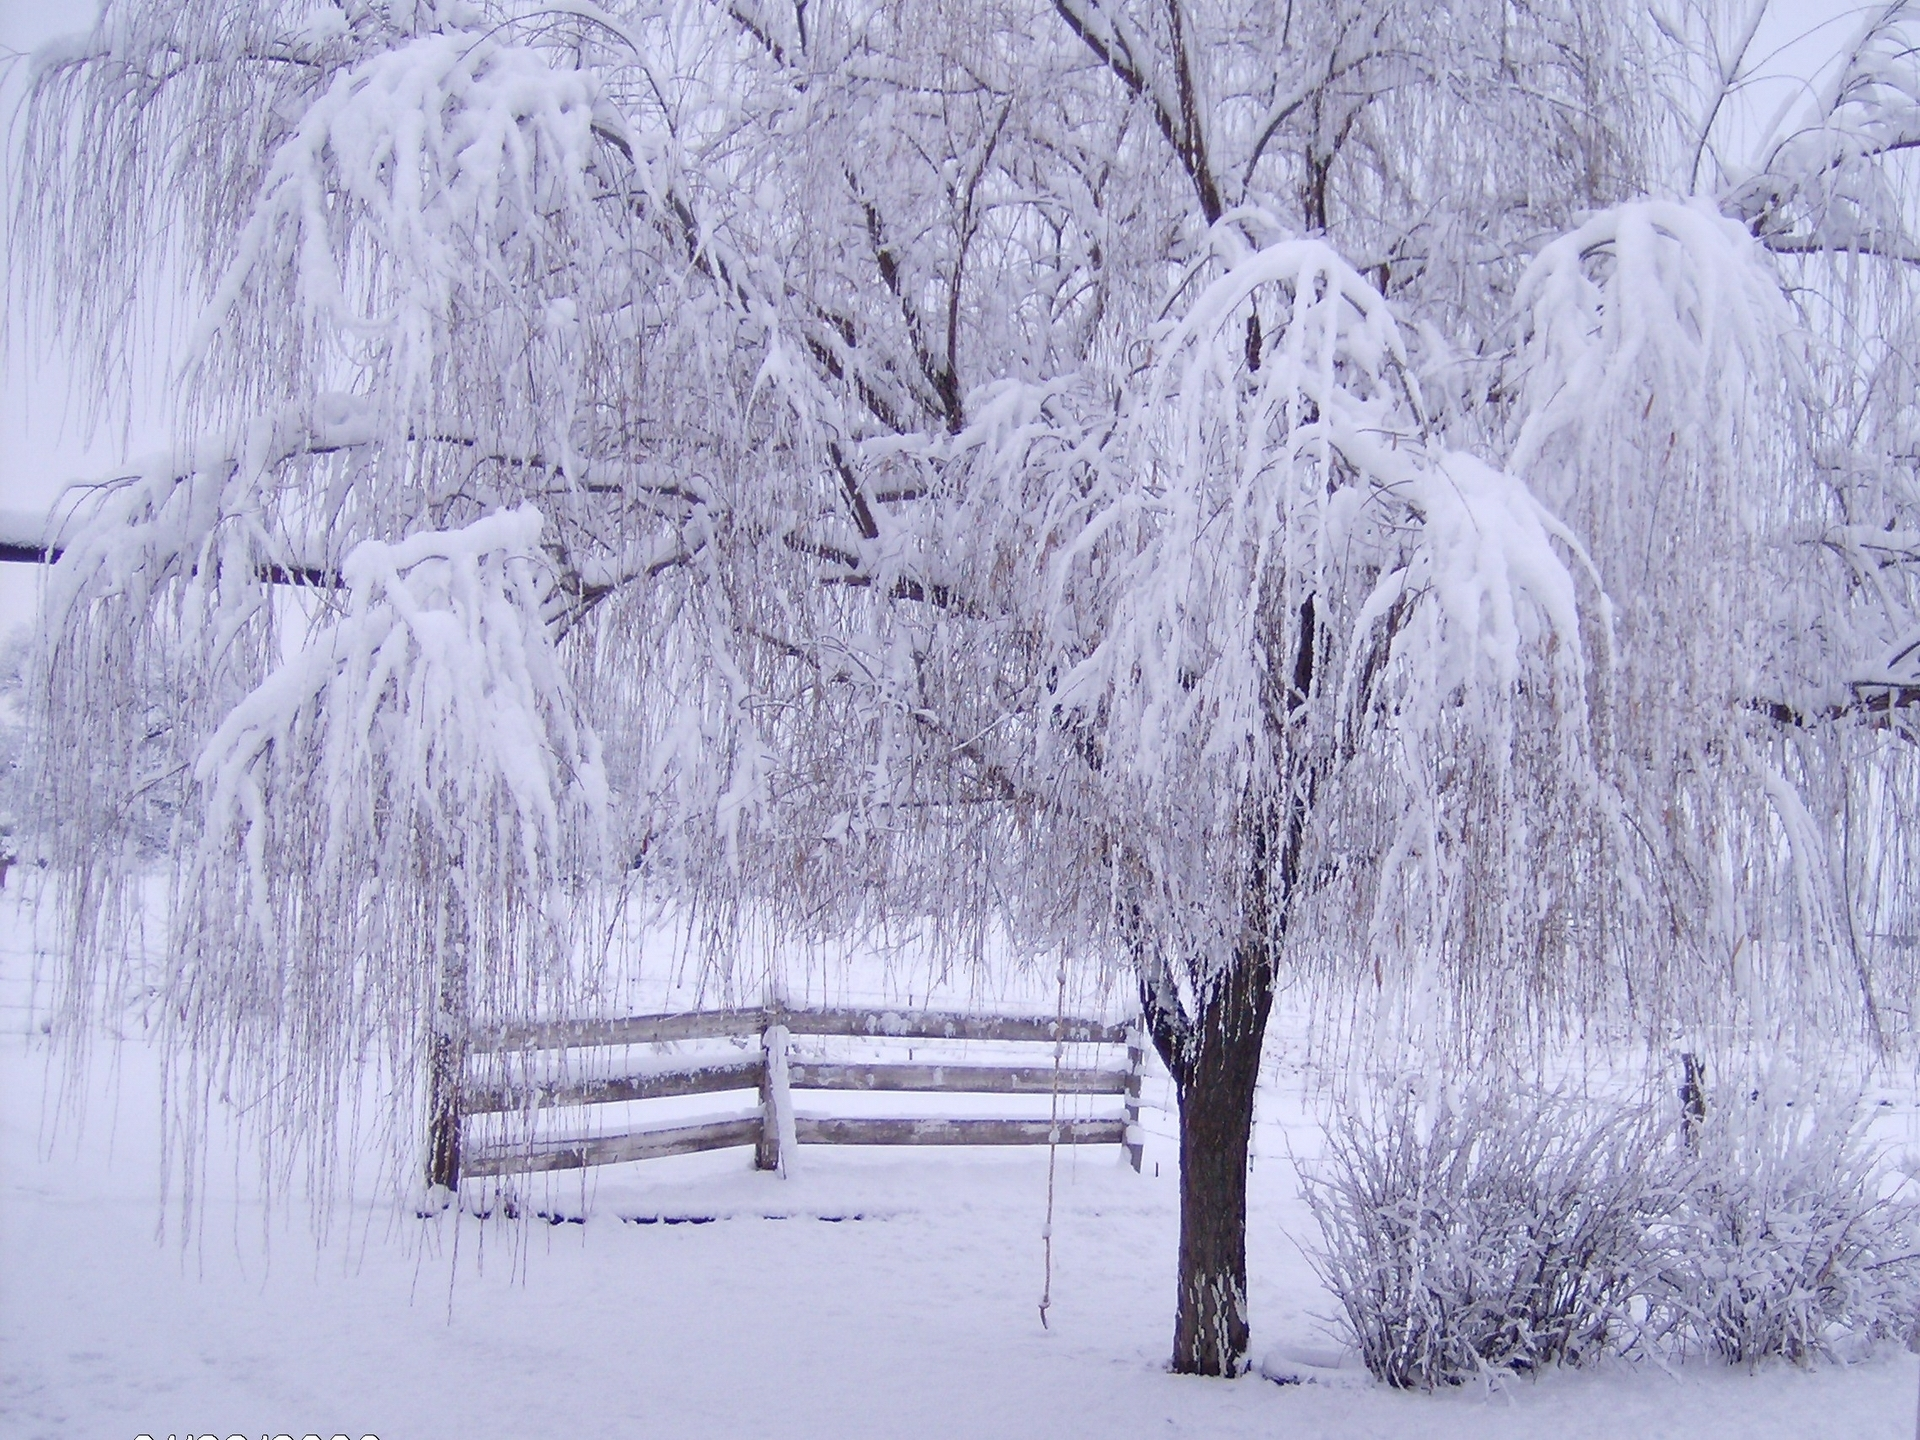 beautiful free winter wallpaper for desktop 8 - diariovea